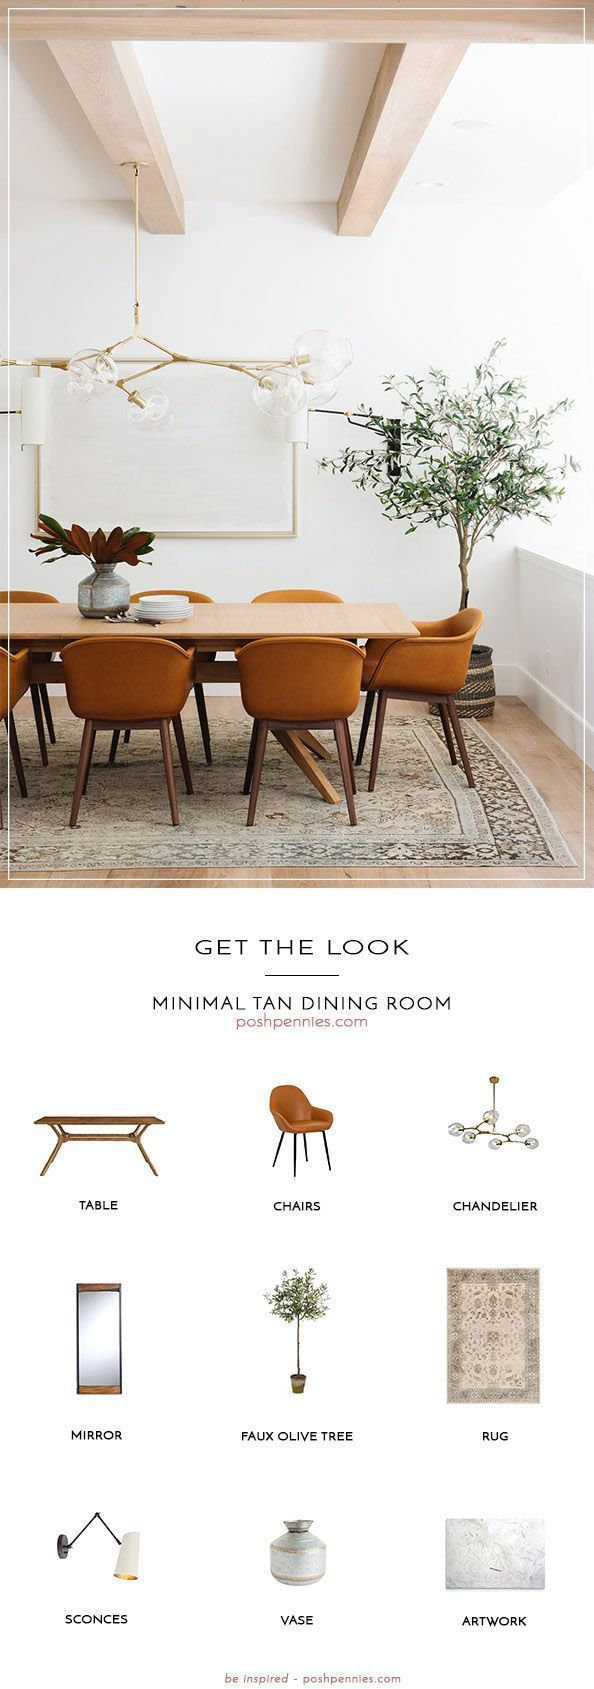 Get The Look: Minimal Tan Dining Room | Posh Pennies